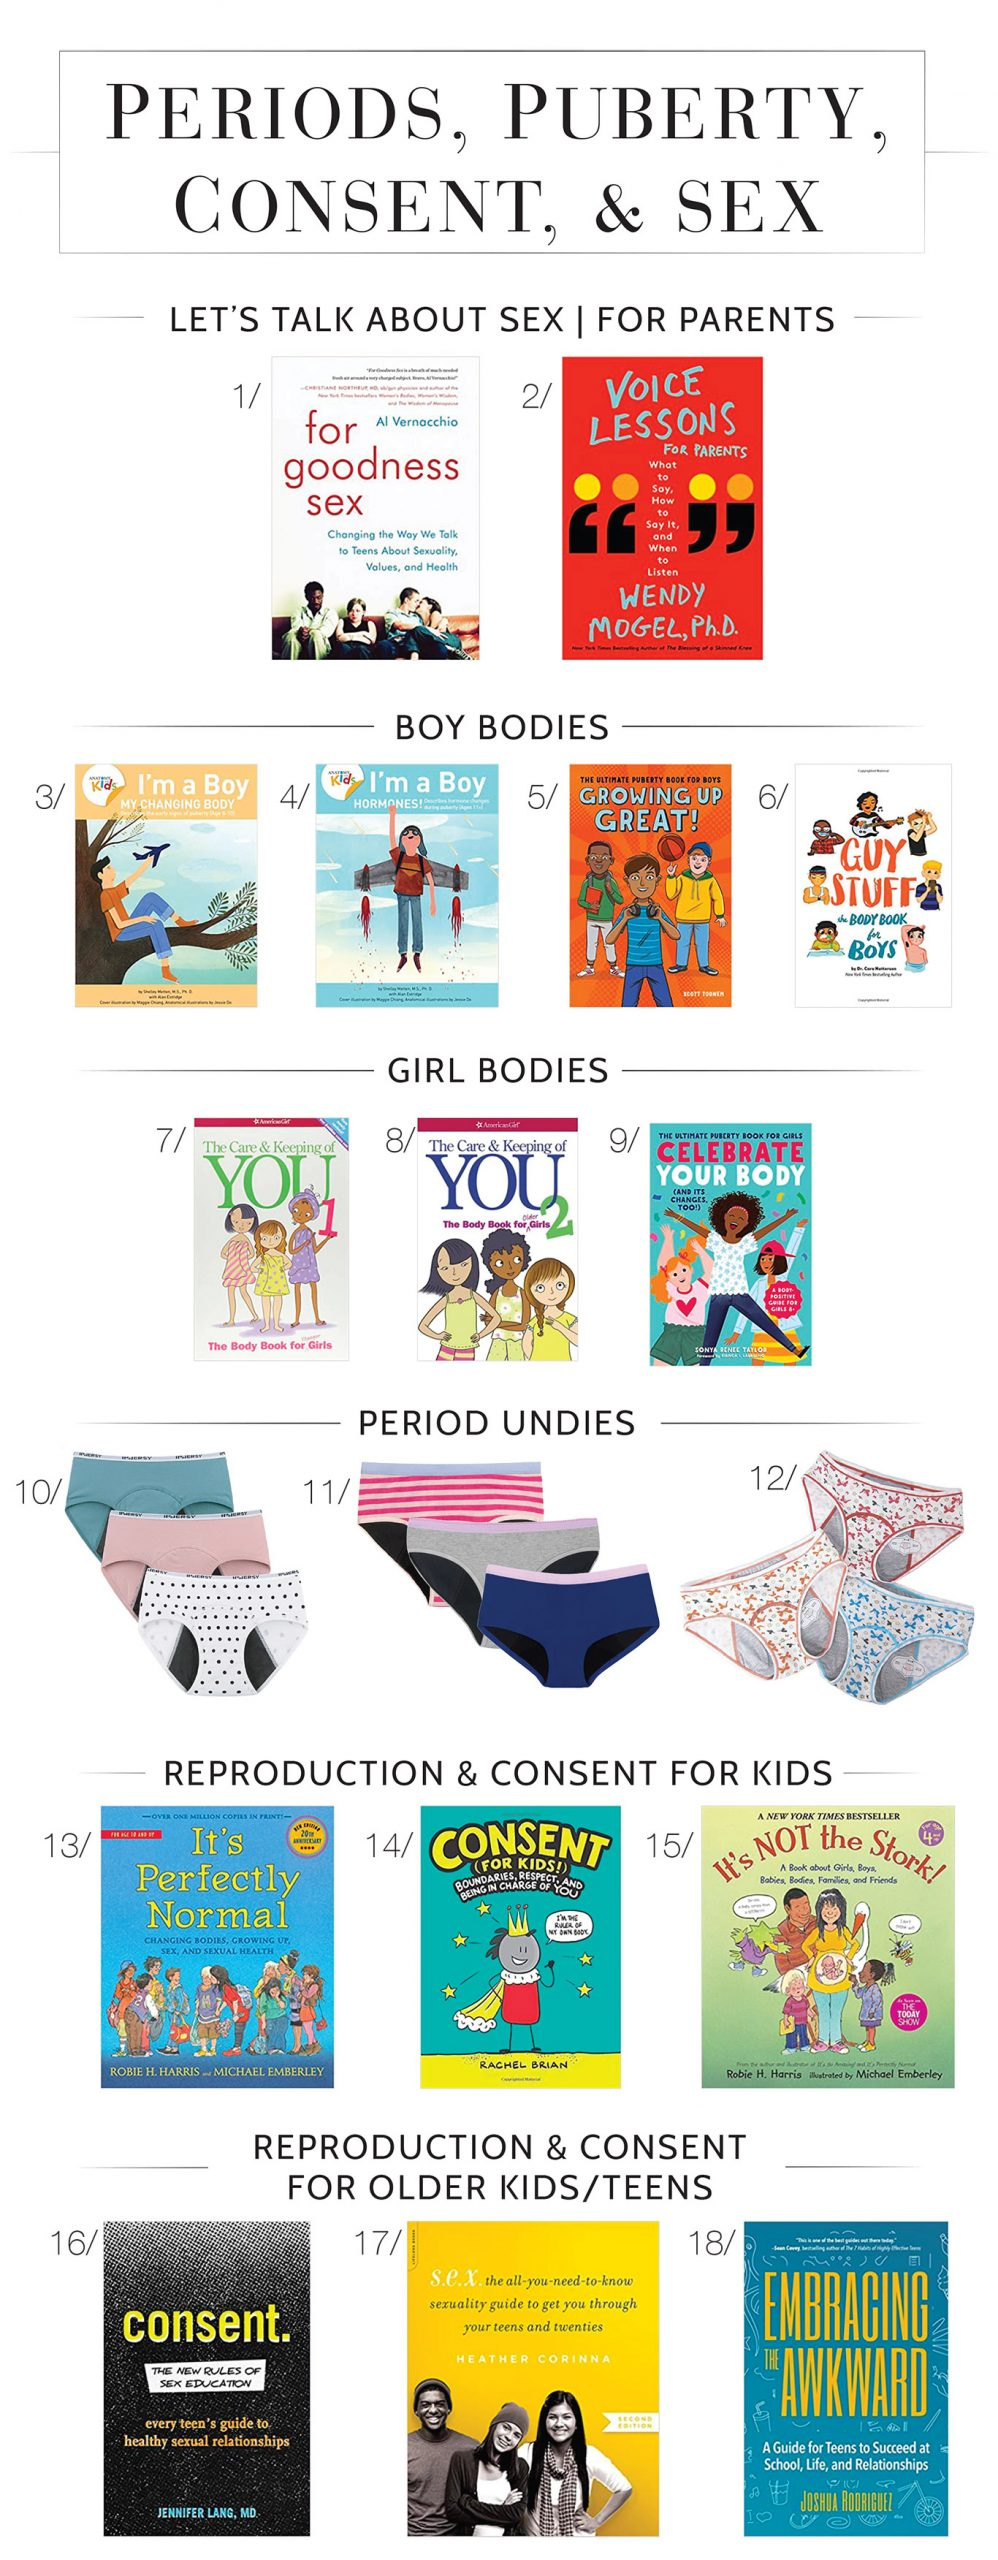 Conversation starter, here. We're ready to talk bodies, puberty, reproduction & consent. Books & period panties + a little help from our friends. Deep breath.